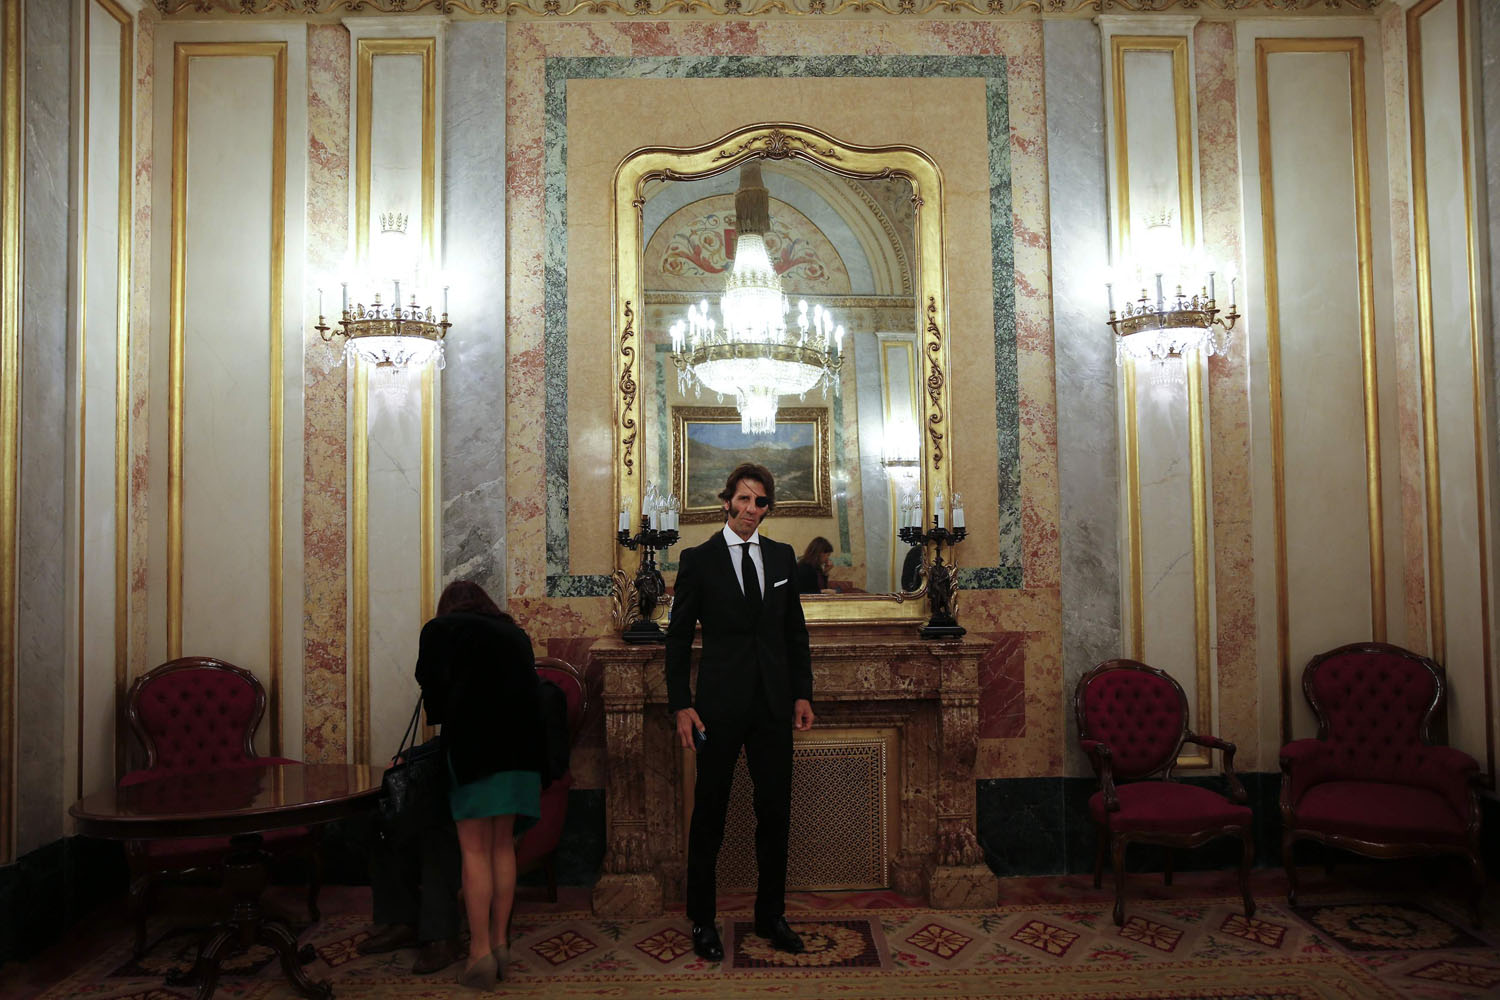 Mar. 24, 2014. Spanish bullfighter Juan Jose Padilla poses for the camera as he attends the wake of Spain's former Prime Minister Adolfo Suarez at the Spanish parliament in Madrid.